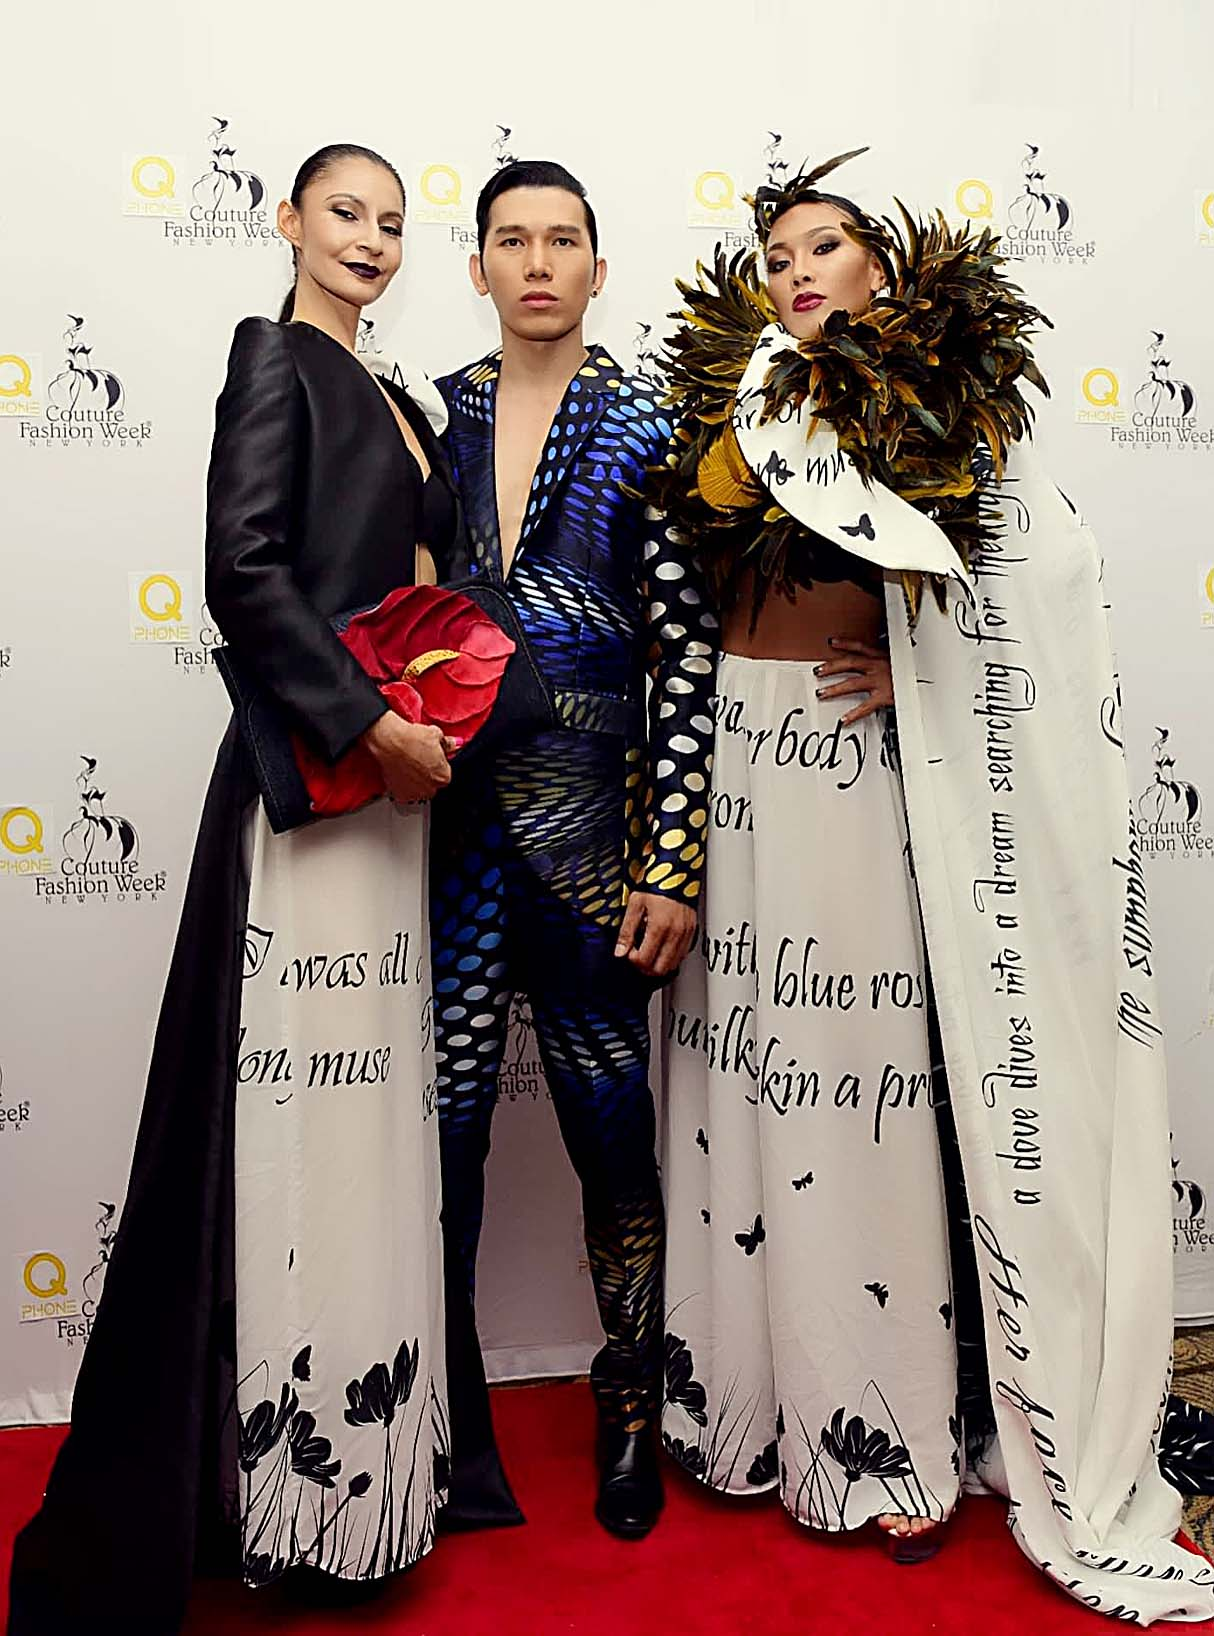 ngoc tinh sac so, dieu huyen duoc chon lam vedette o tuan le couture new york fashion hinh anh 1